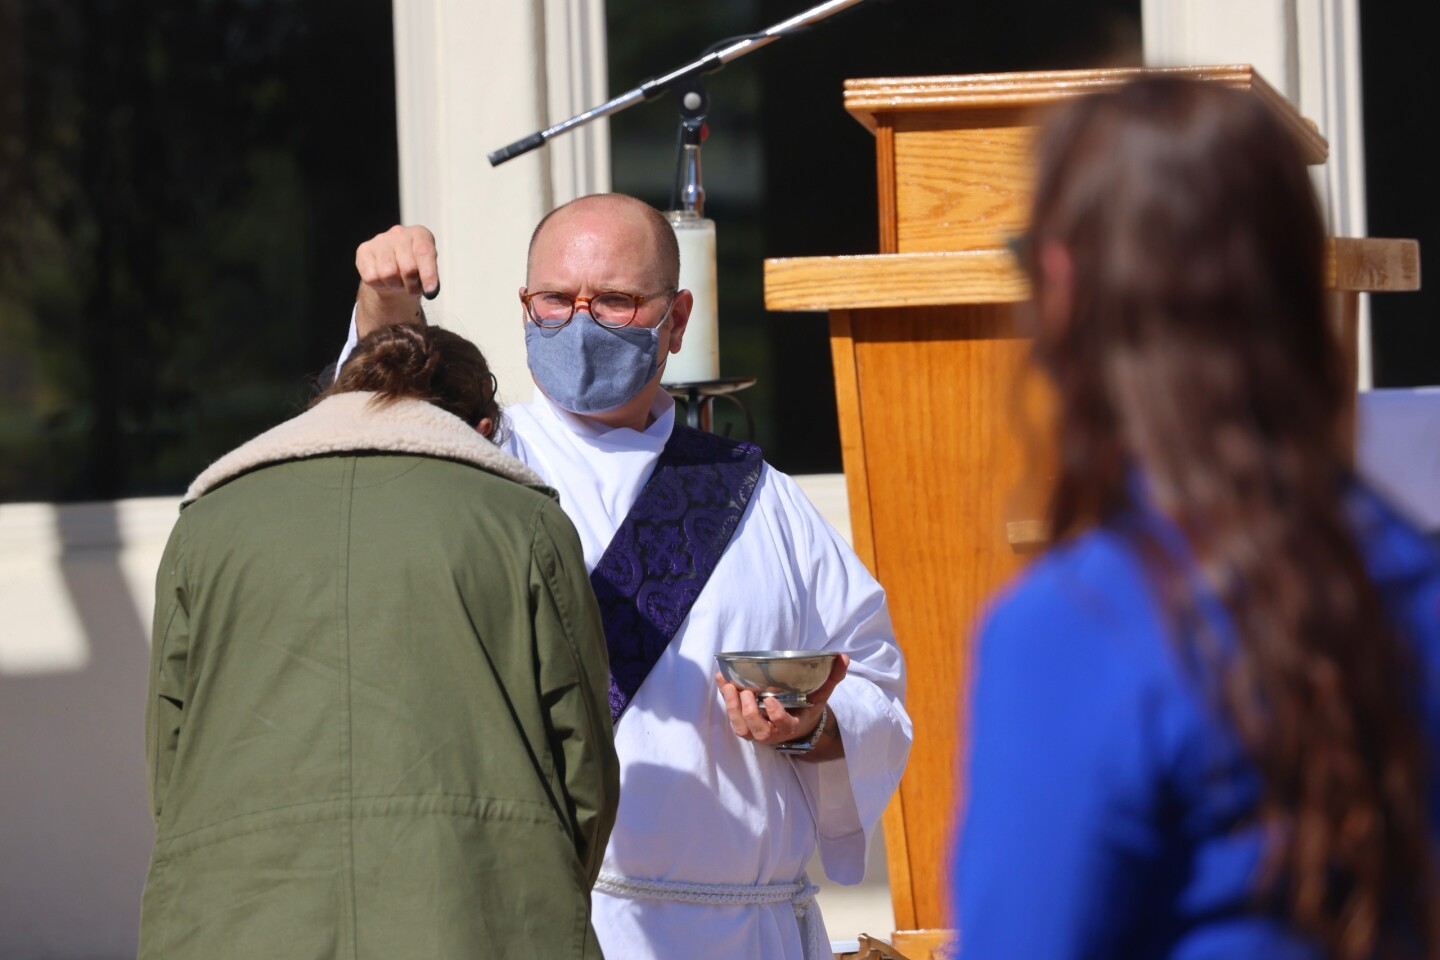 Ash Wednesday services look different during the pandemic at Holy Cross Church in Santa Cruz on Feb. 17, 2021